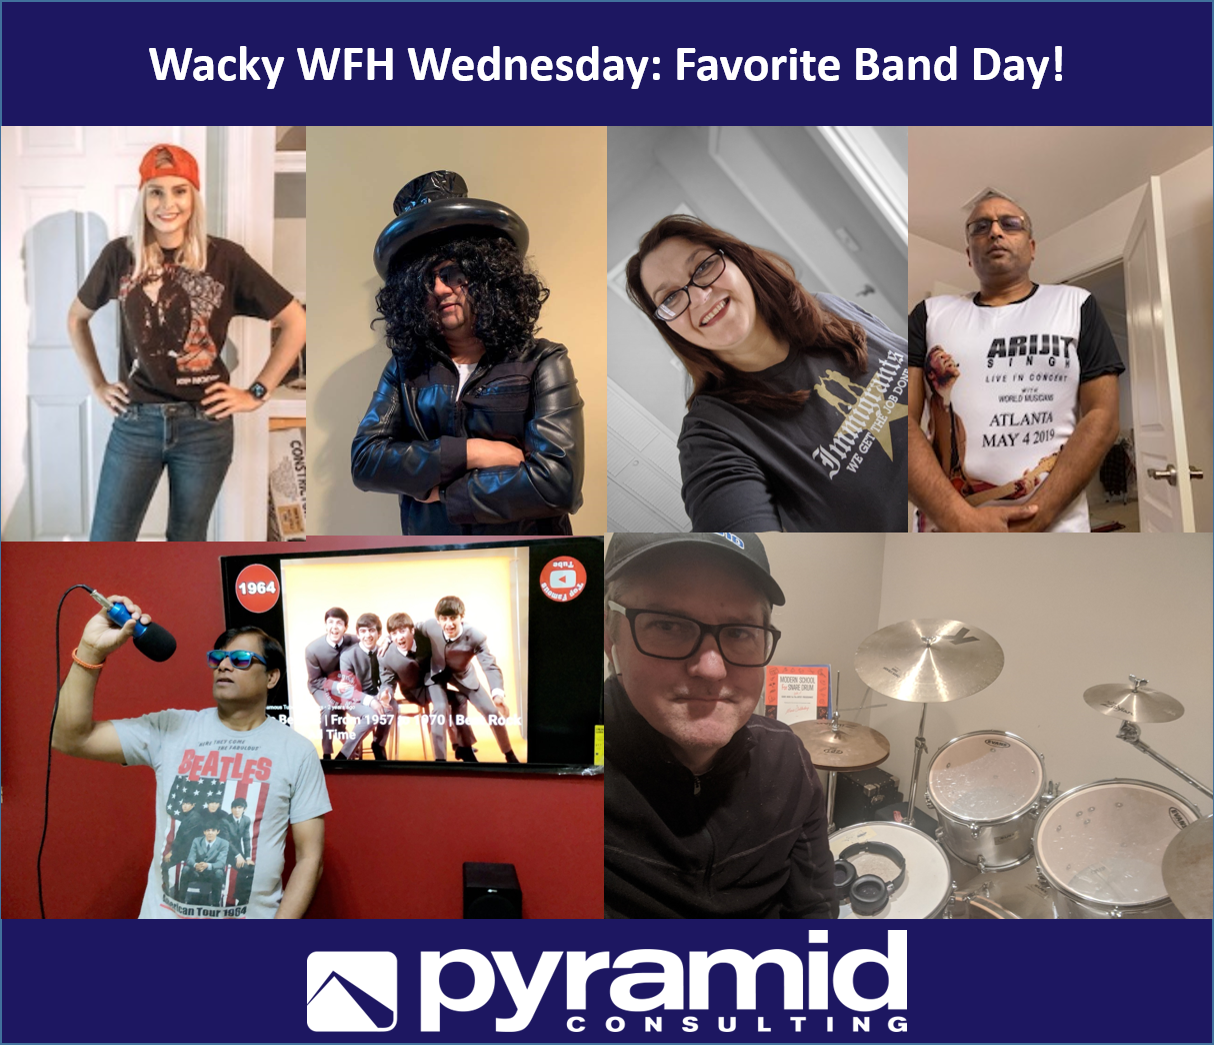 Wacky WFH Wednesday: Favorite Band